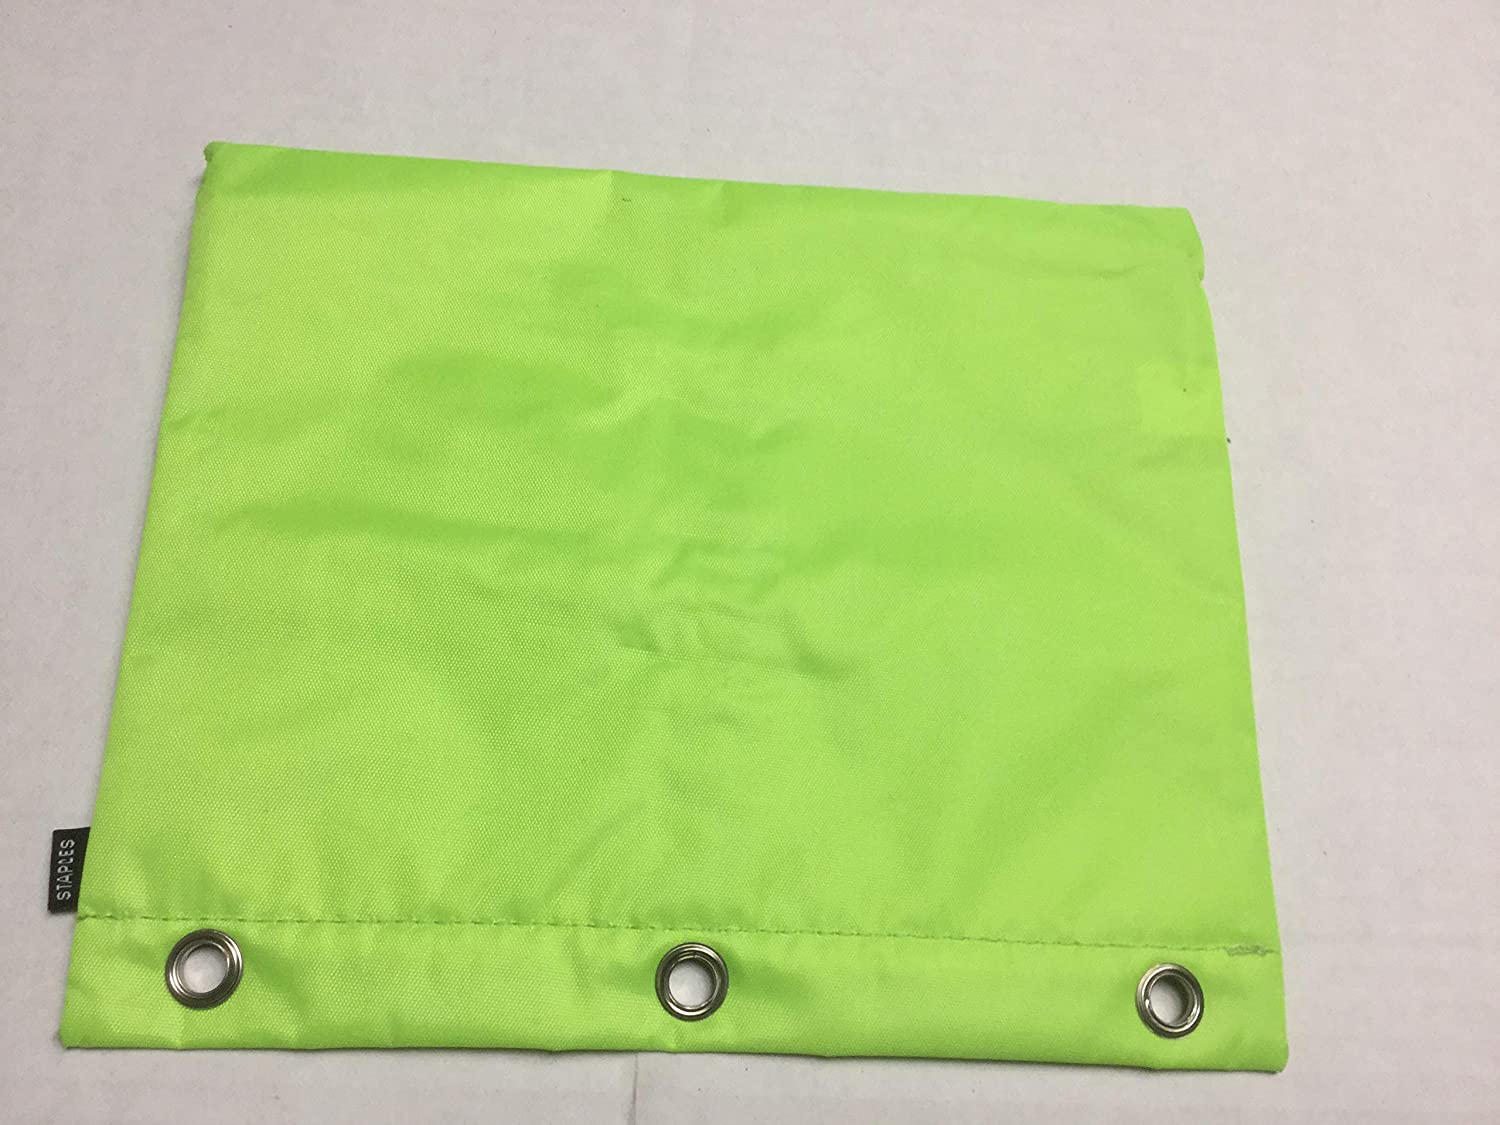 Staples 3-Ring Binder Pencil Pouch Neon Lime-Green